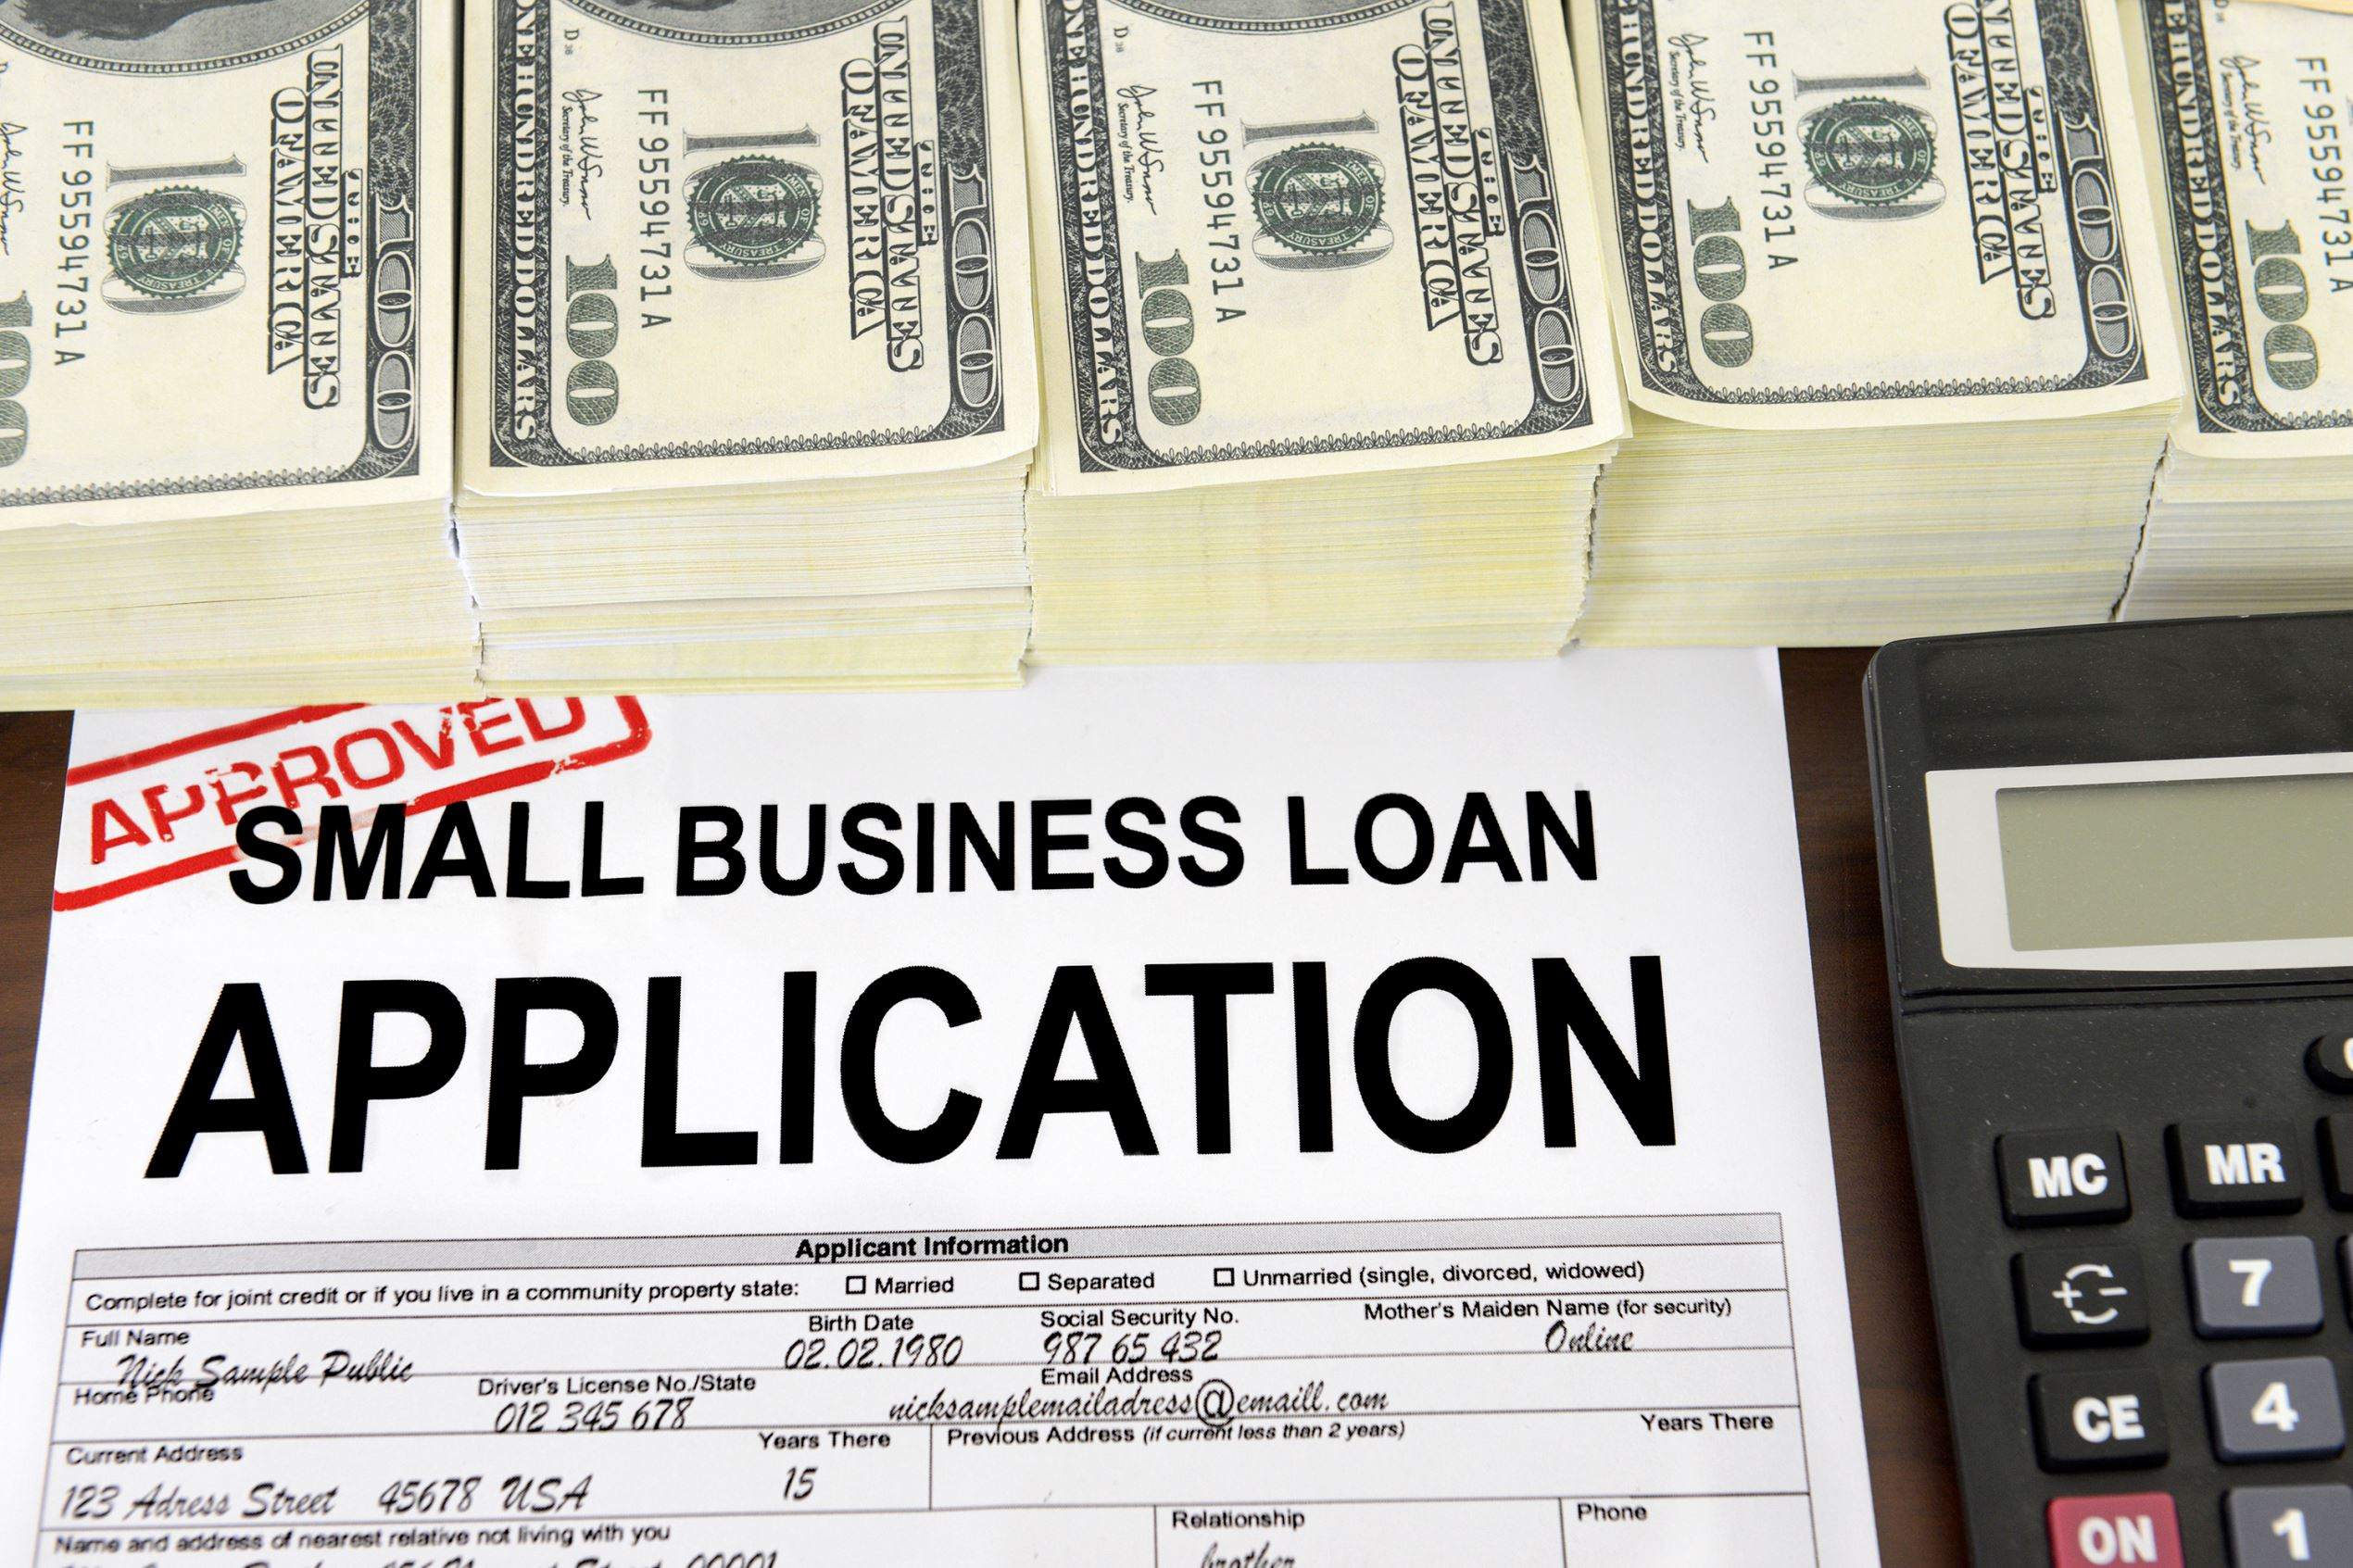 Application for a small business loan and US dollar bills. Mangostock/Getty Images